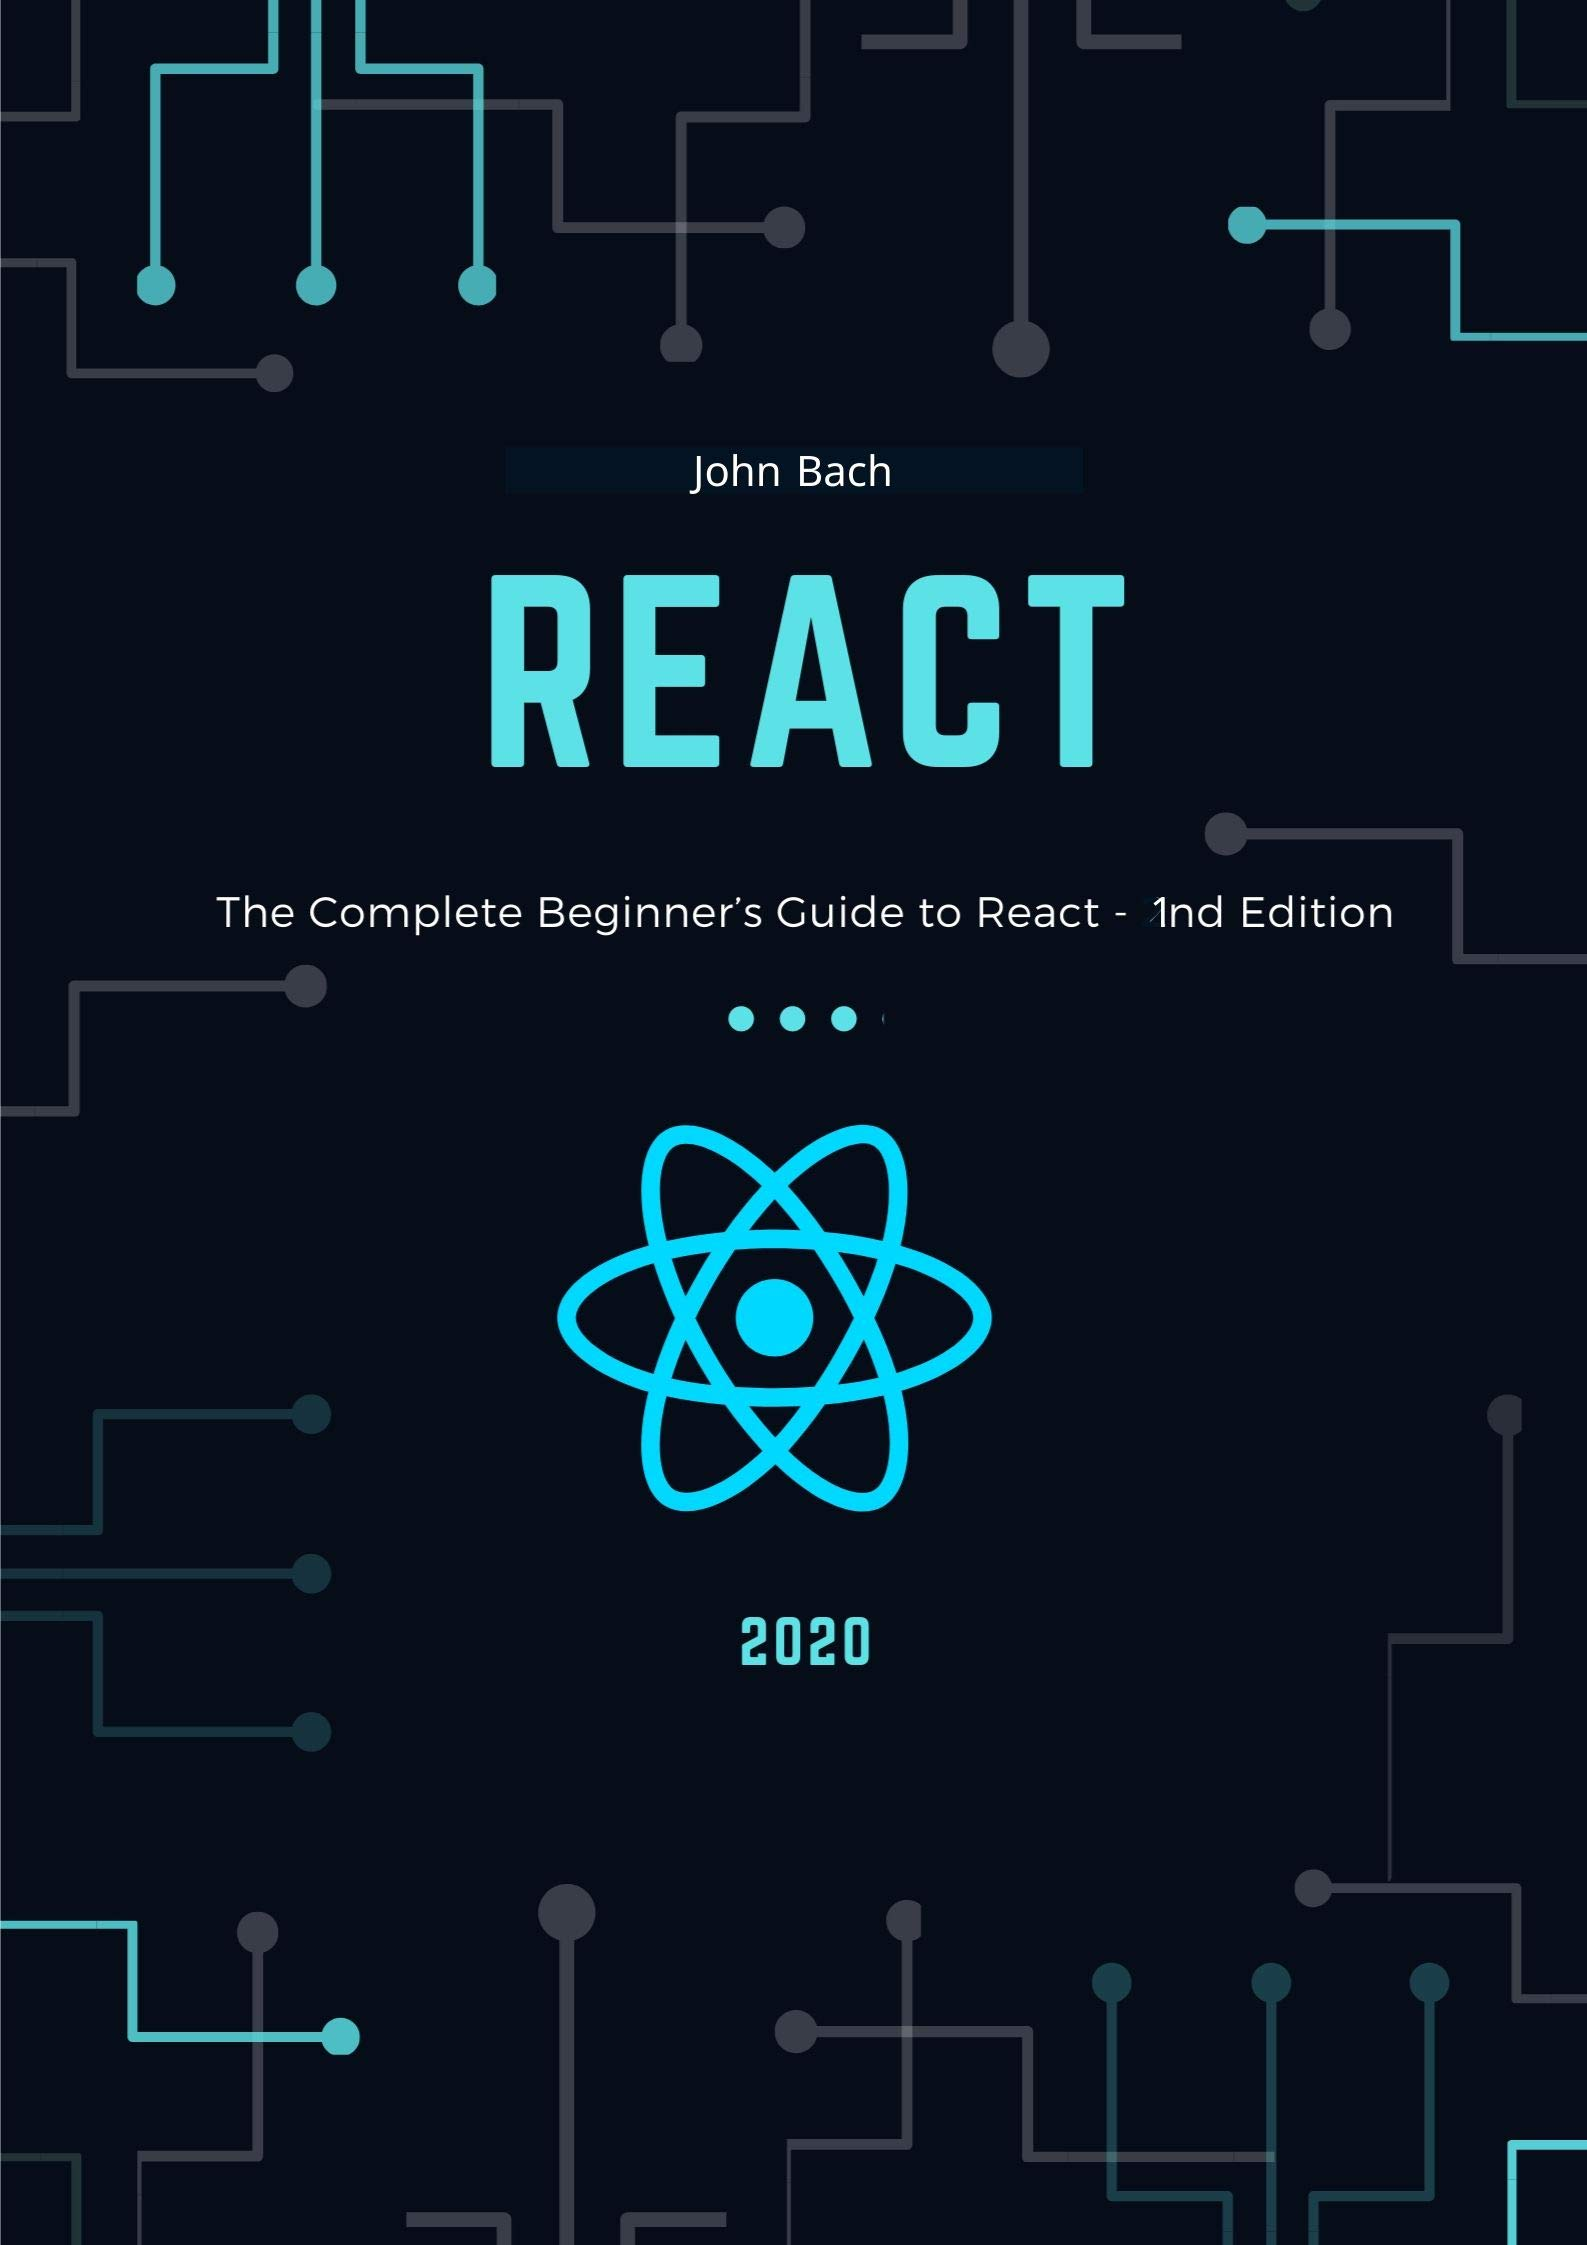 React js: The Complete Beginner's Guide to React - 1nd Edition (2020)